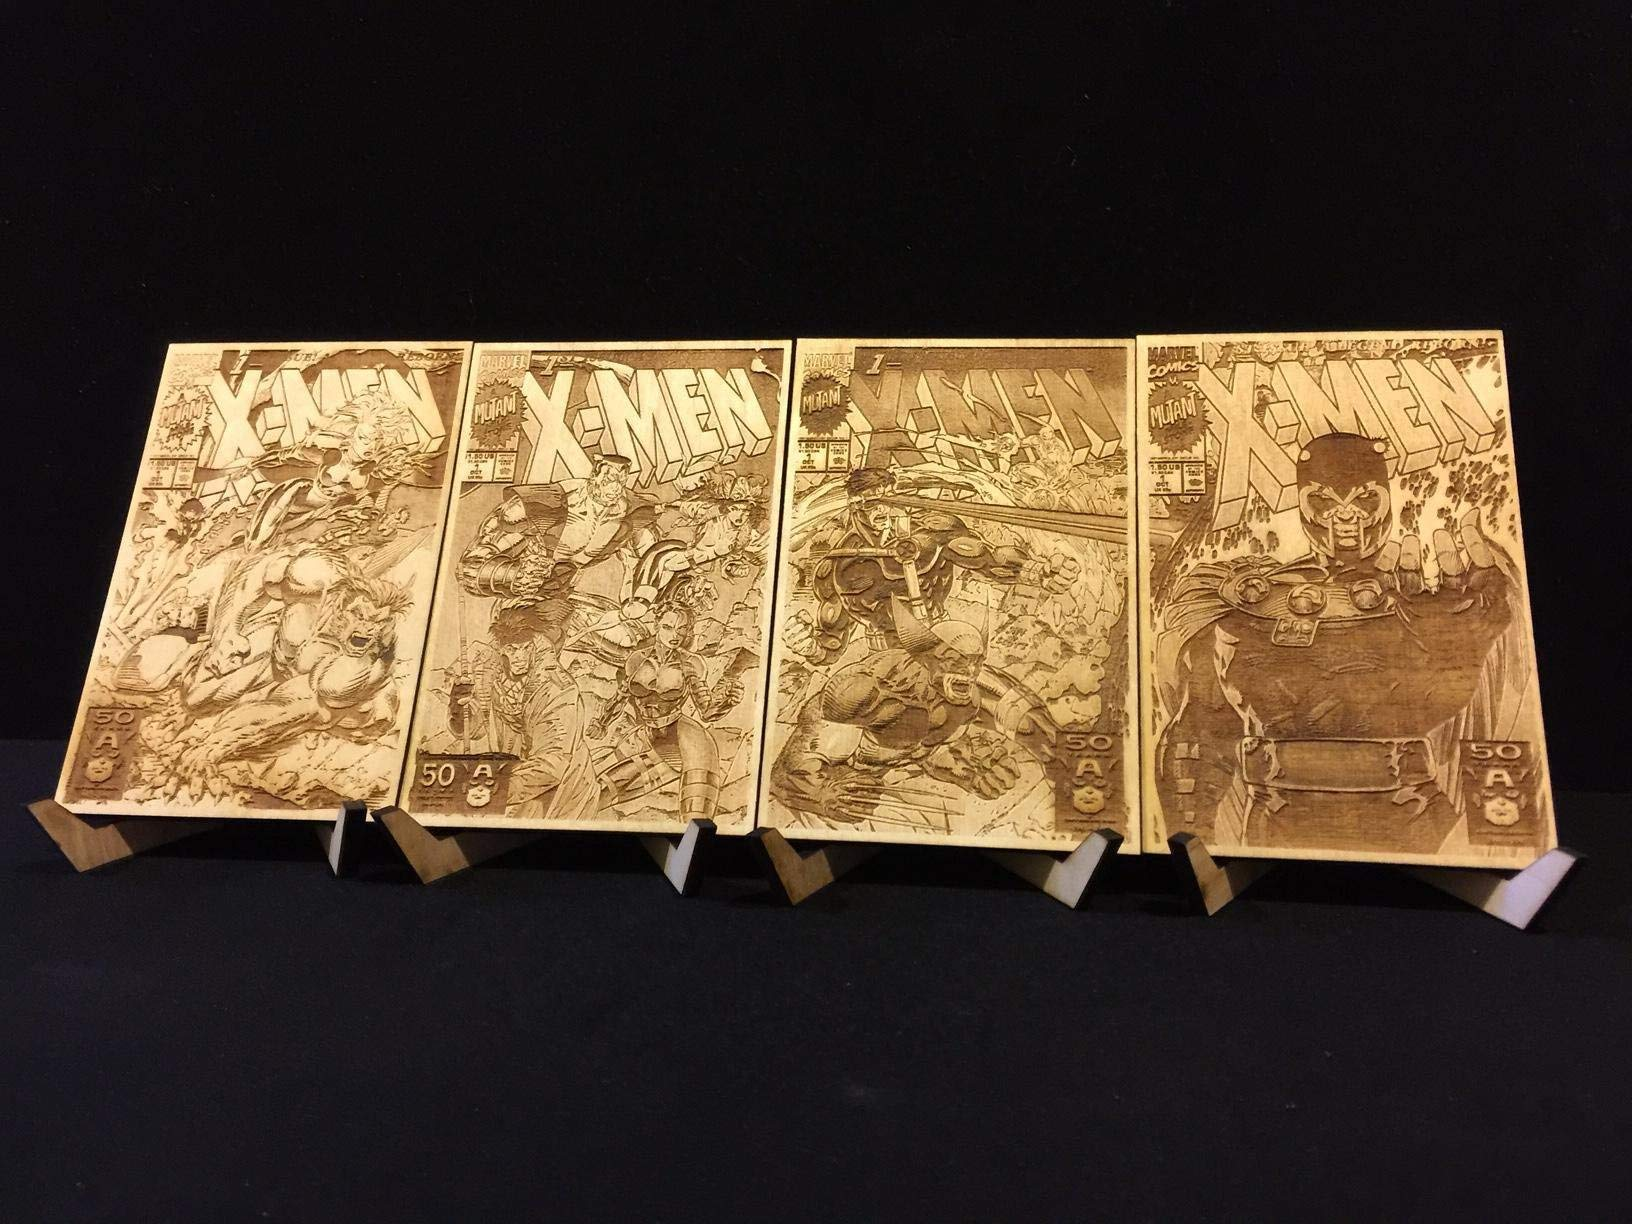 X-Men #1 All Four Jim Lee Covers Laser Etched Wood Covers on Baltic Birch